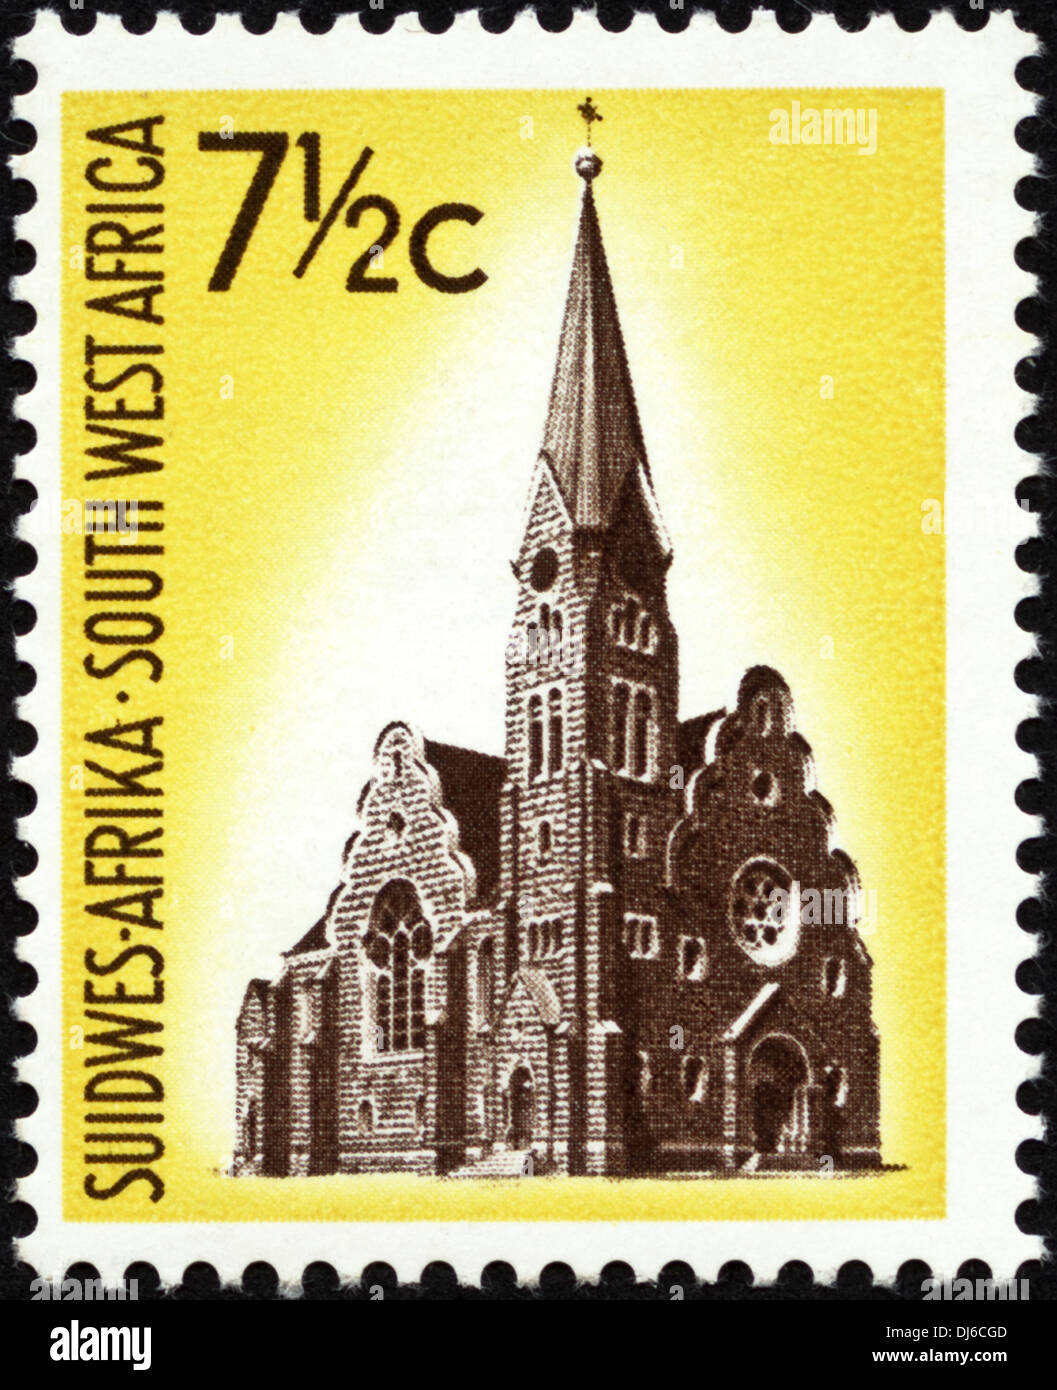 postage stamp South West Africa 7½c featuring church with spire dated 1961 - Stock Image